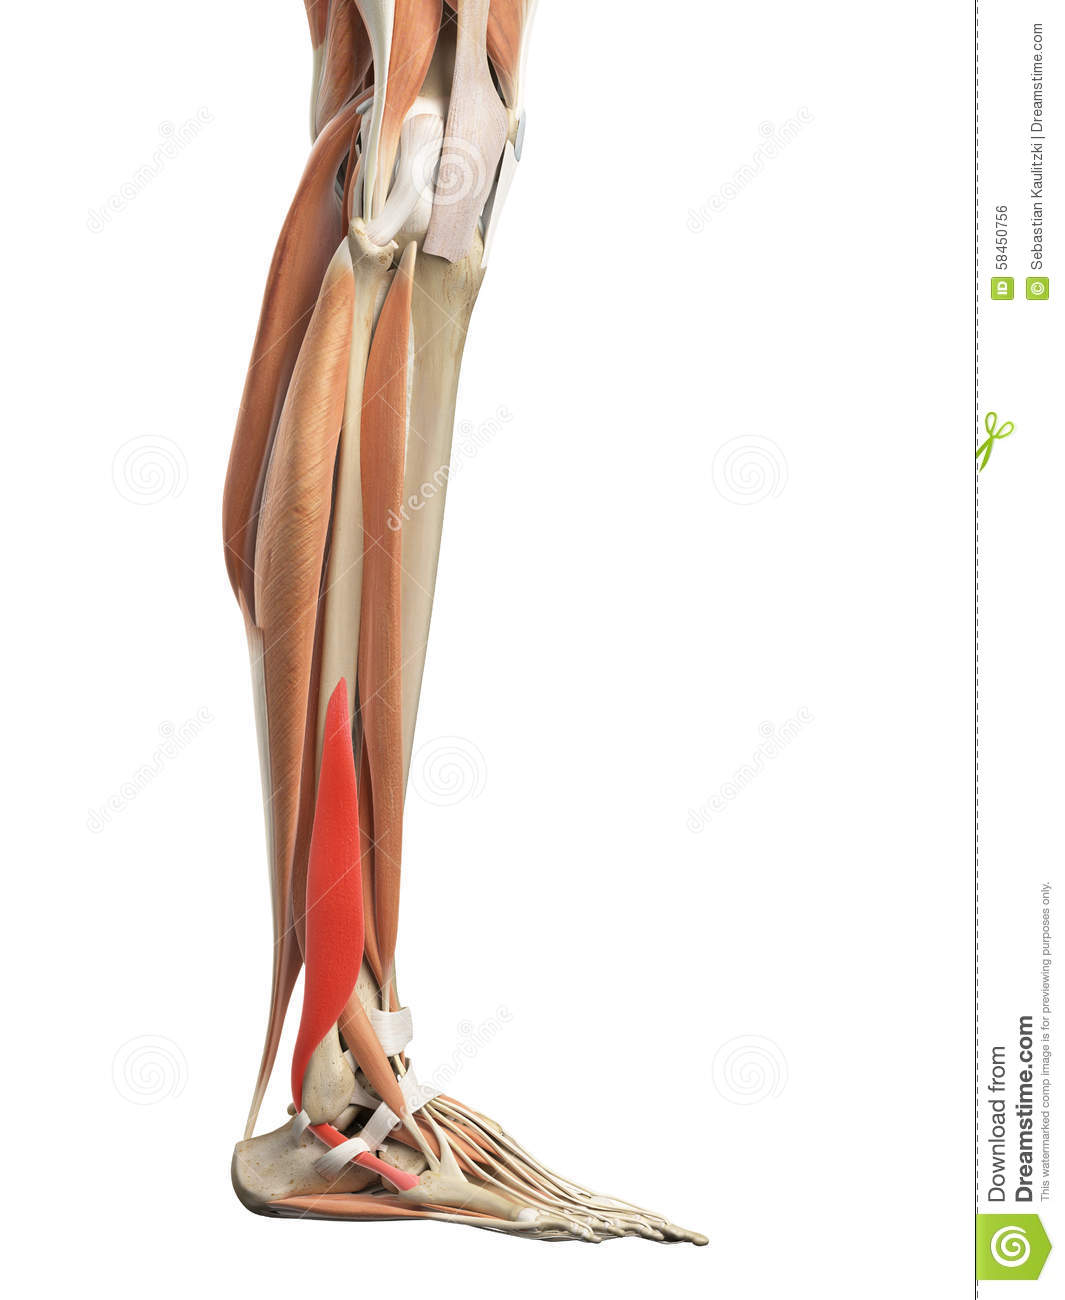 The peroneus brevis stock illustration. Illustration of anatomy ...